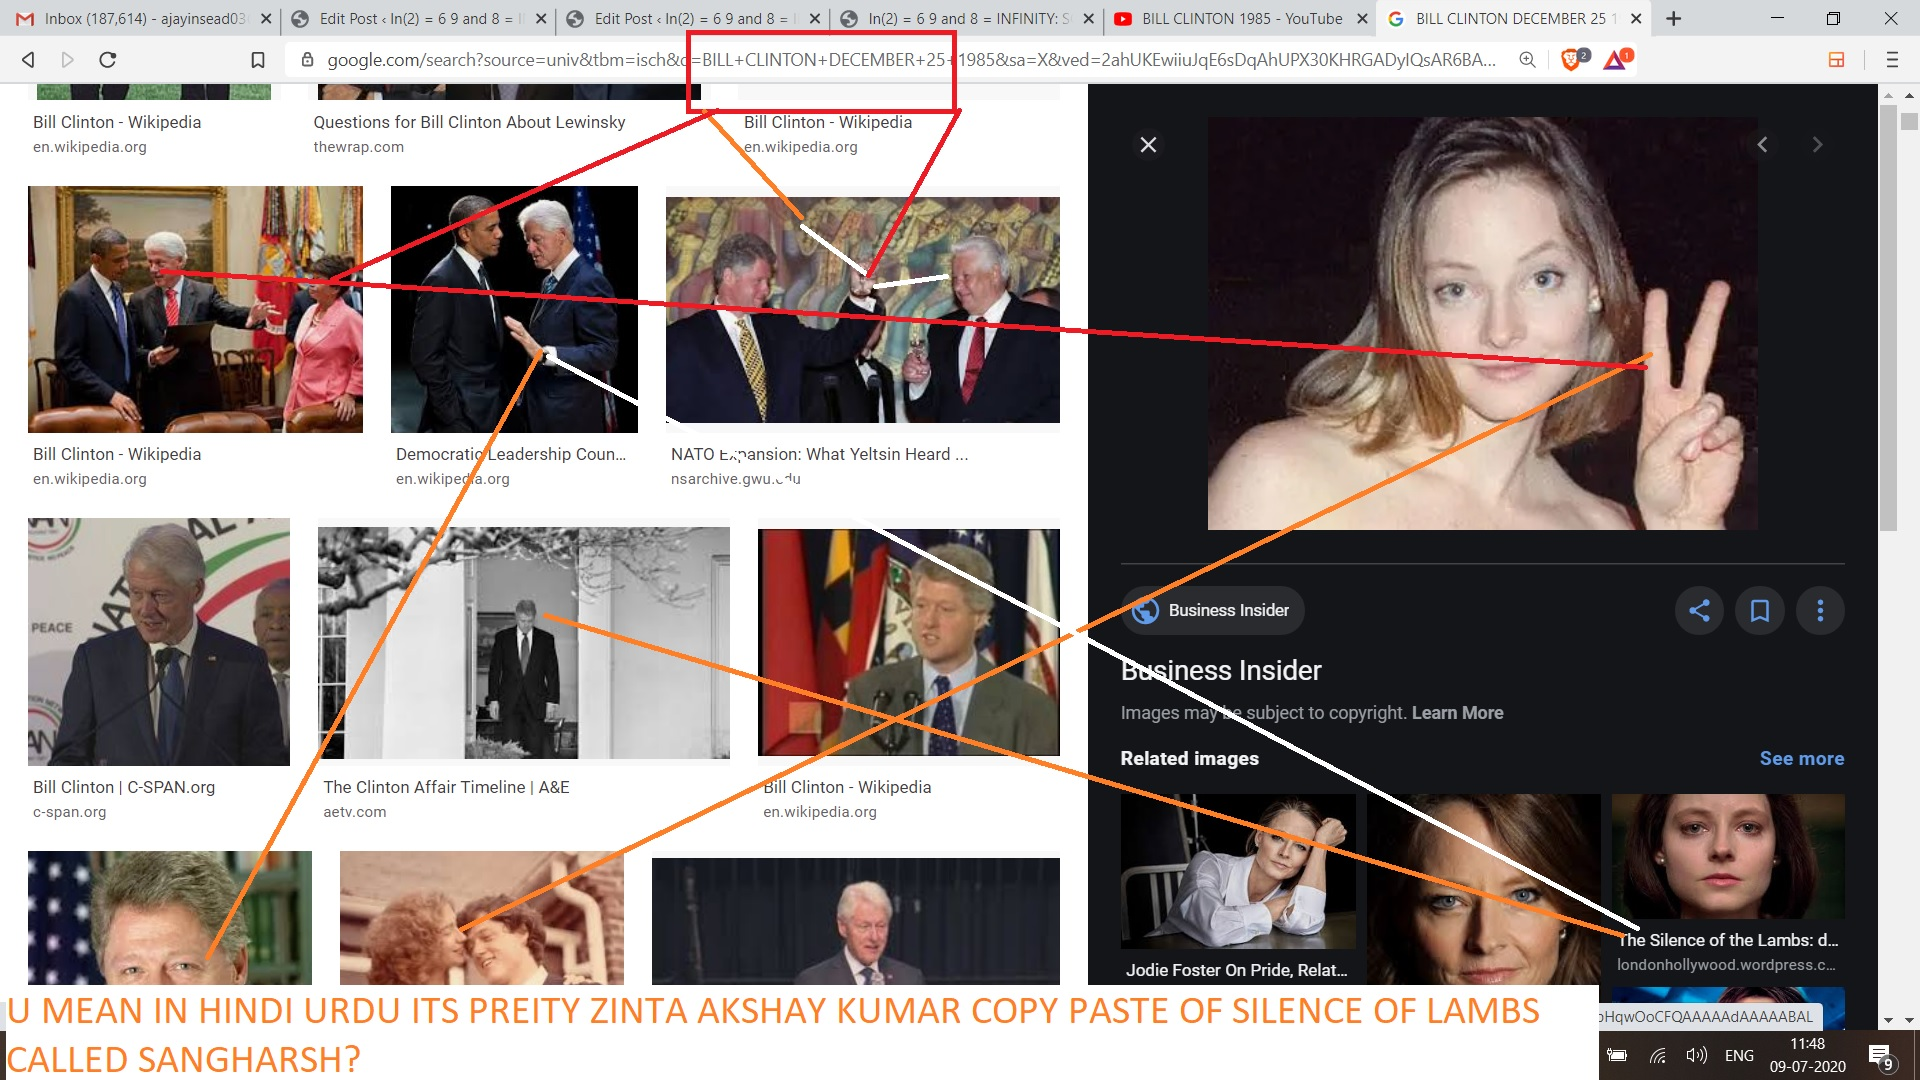 WHAT SHOULD I CALL THIS JODIE FOSTER SILENCE OF LAMBS PREITY INTA AKA TIFFANY TAYLOR 1998 OR 1985 BILL CLINTON AND OLGA LEDNICHENKO I MENA WHAT SHOULD I CALL THIS WHEN ITS AGOT A V SIGN